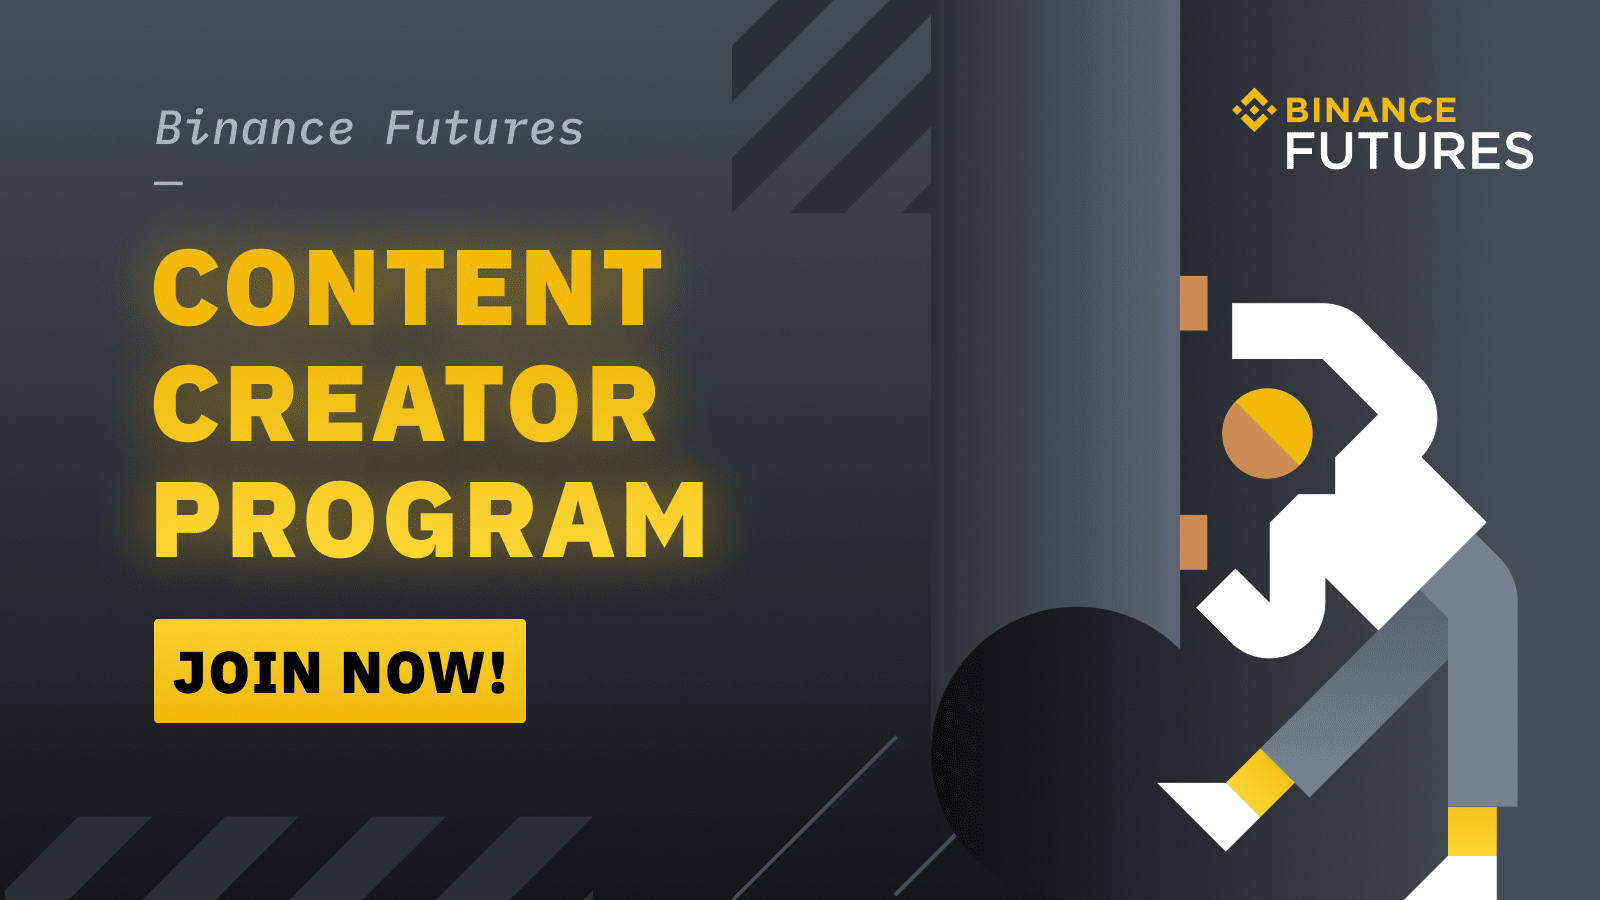 Earn Up to 1,600 BUSD Monthly With Binance Futures Content Creator ProgramCryptocurrency Trading Signals, Strategies & Templates | DexStrats